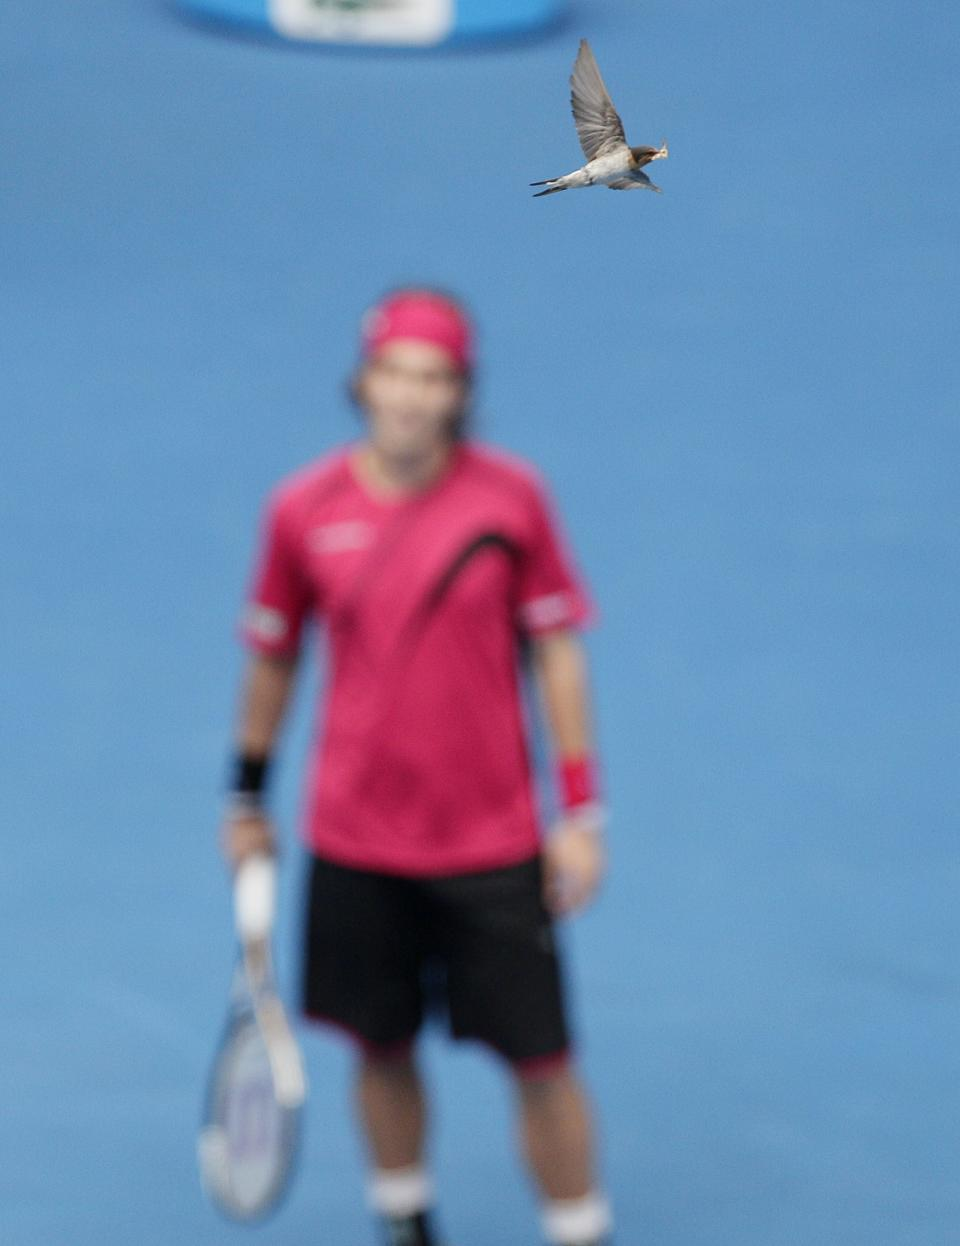 A bird flies across Rod Laver Arena with food in it's mouth as Slovakia's Lukas Lacko looks on during his third round match against Spain's Rafael Nadal at the Australian Open tennis championship, in Melbourne, Australia, Friday, Jan. 20, 2012. (AP Photo/John Donegan)